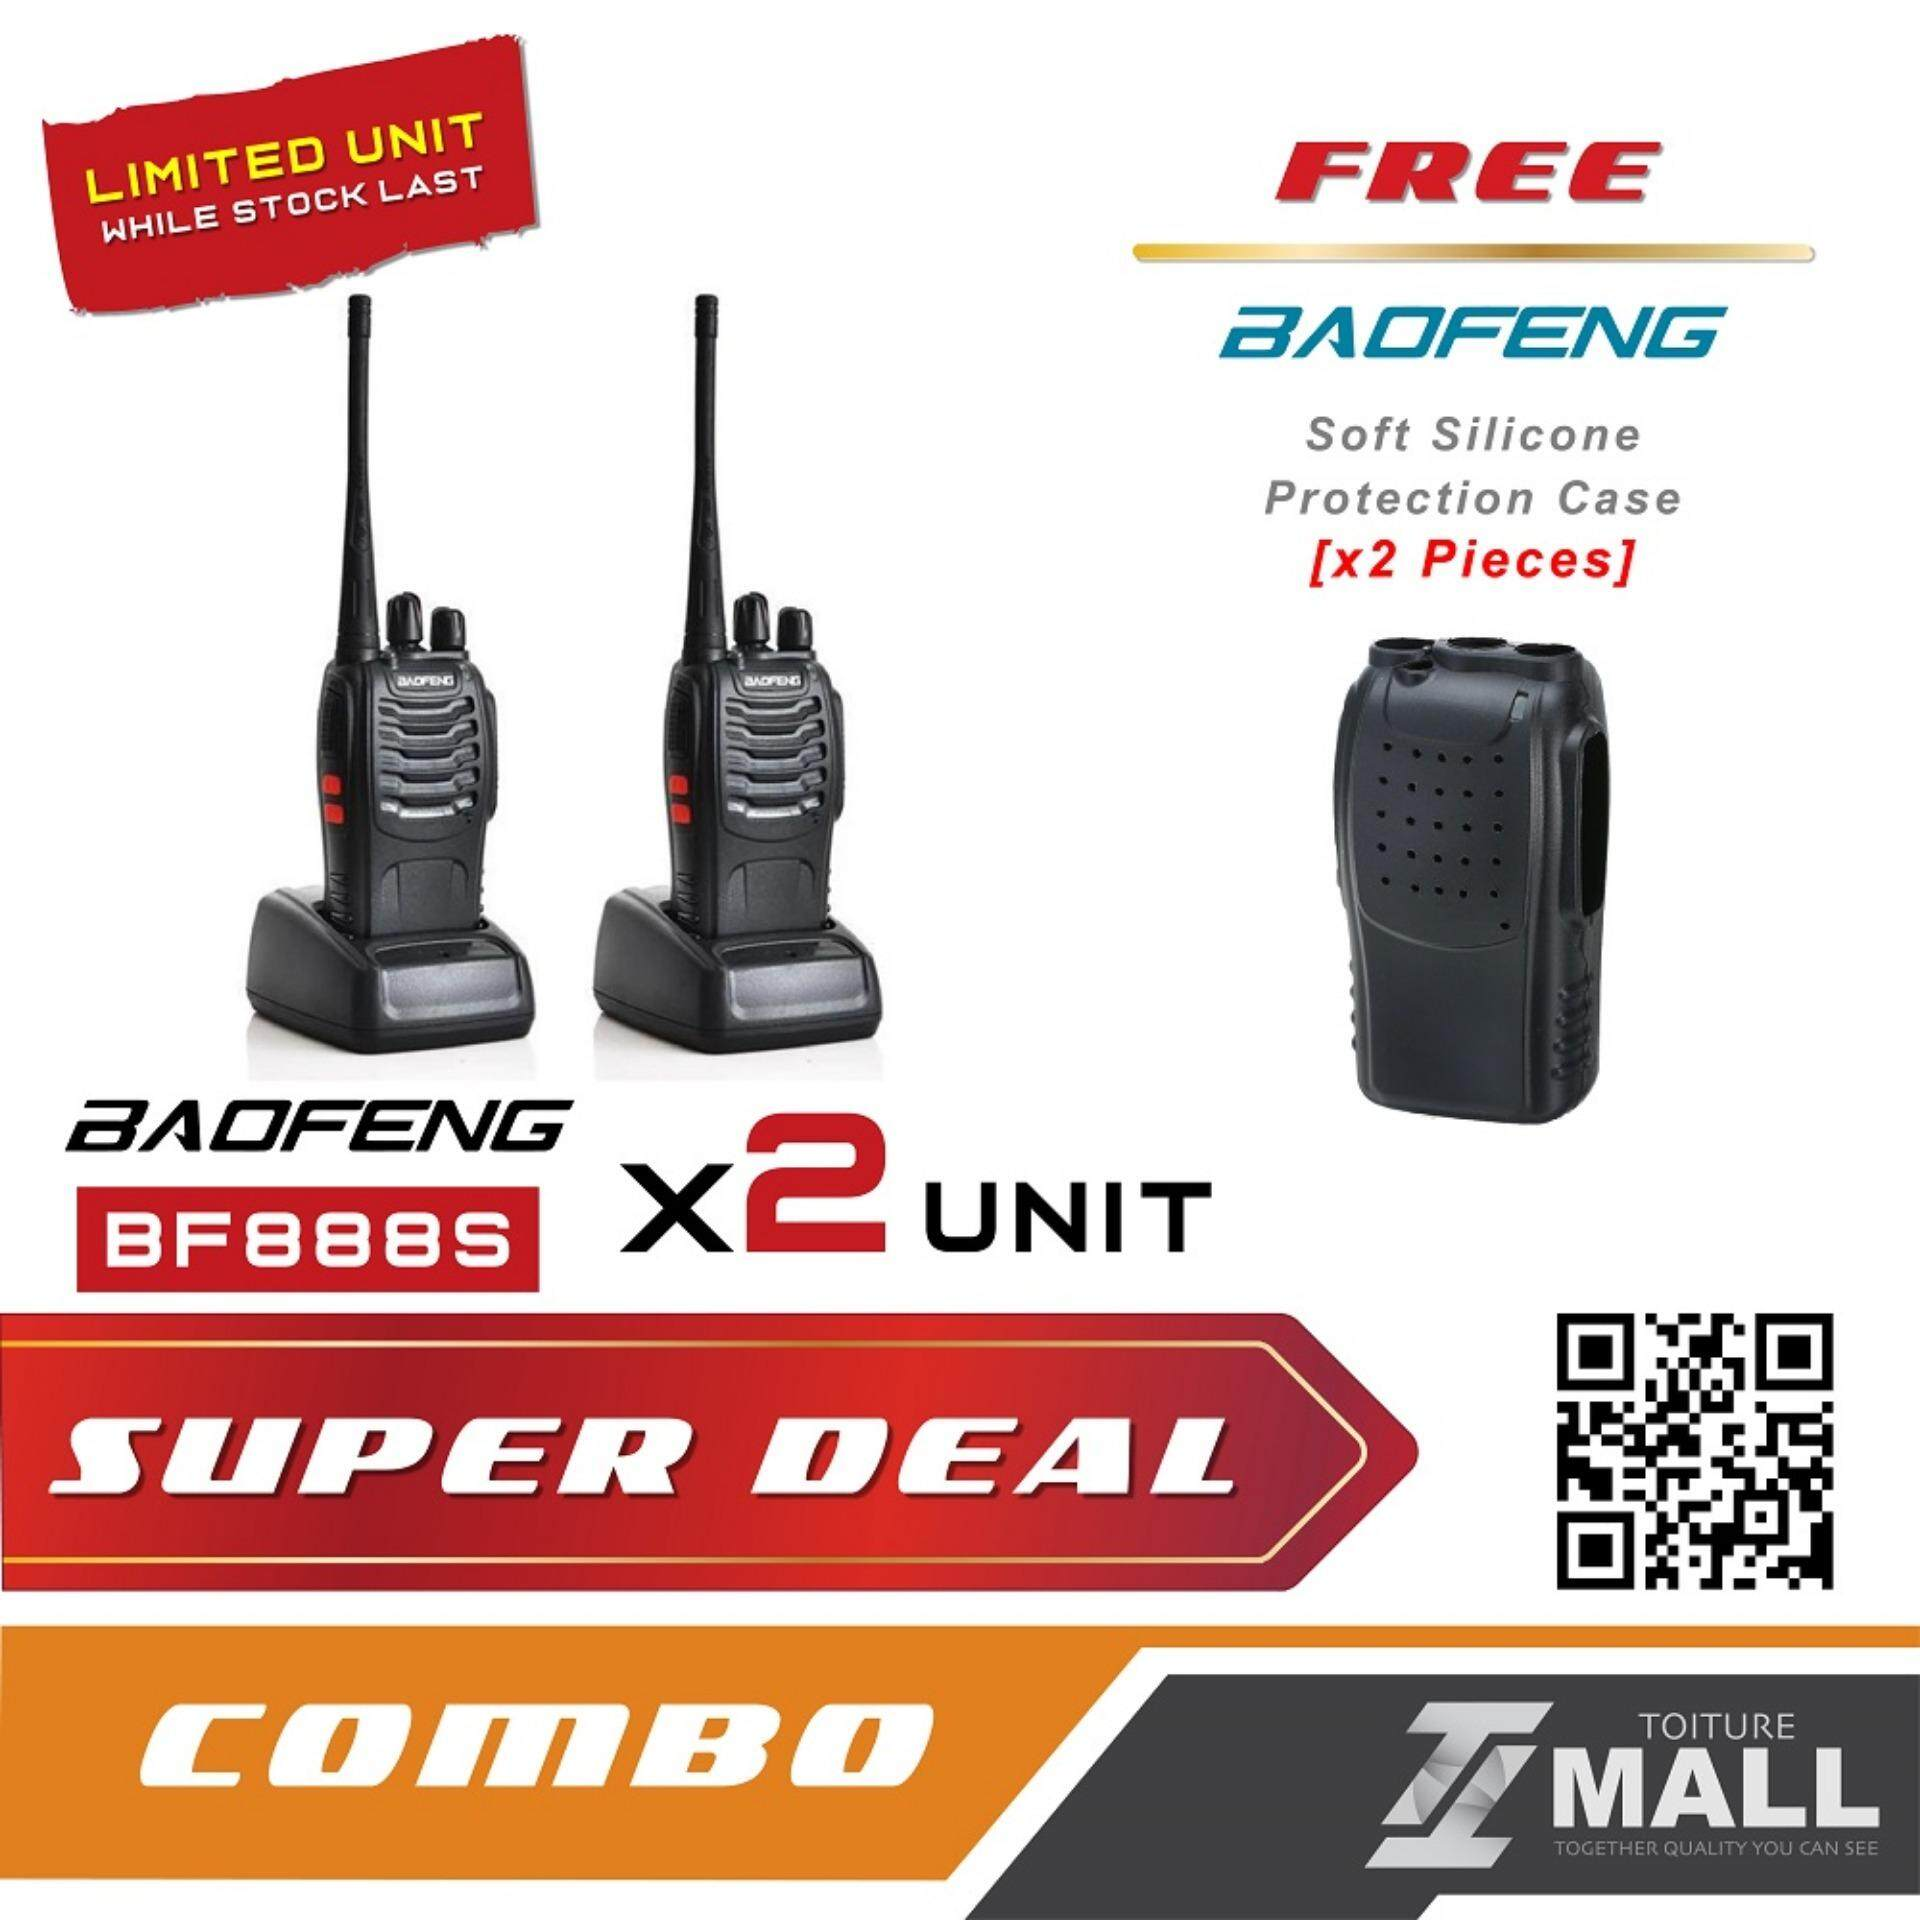 BAOFENG BF-888S Walkie Talkie Two-way Portable CB Radio [2 UNIT] + FREE Silicone Case [2 UNIT]